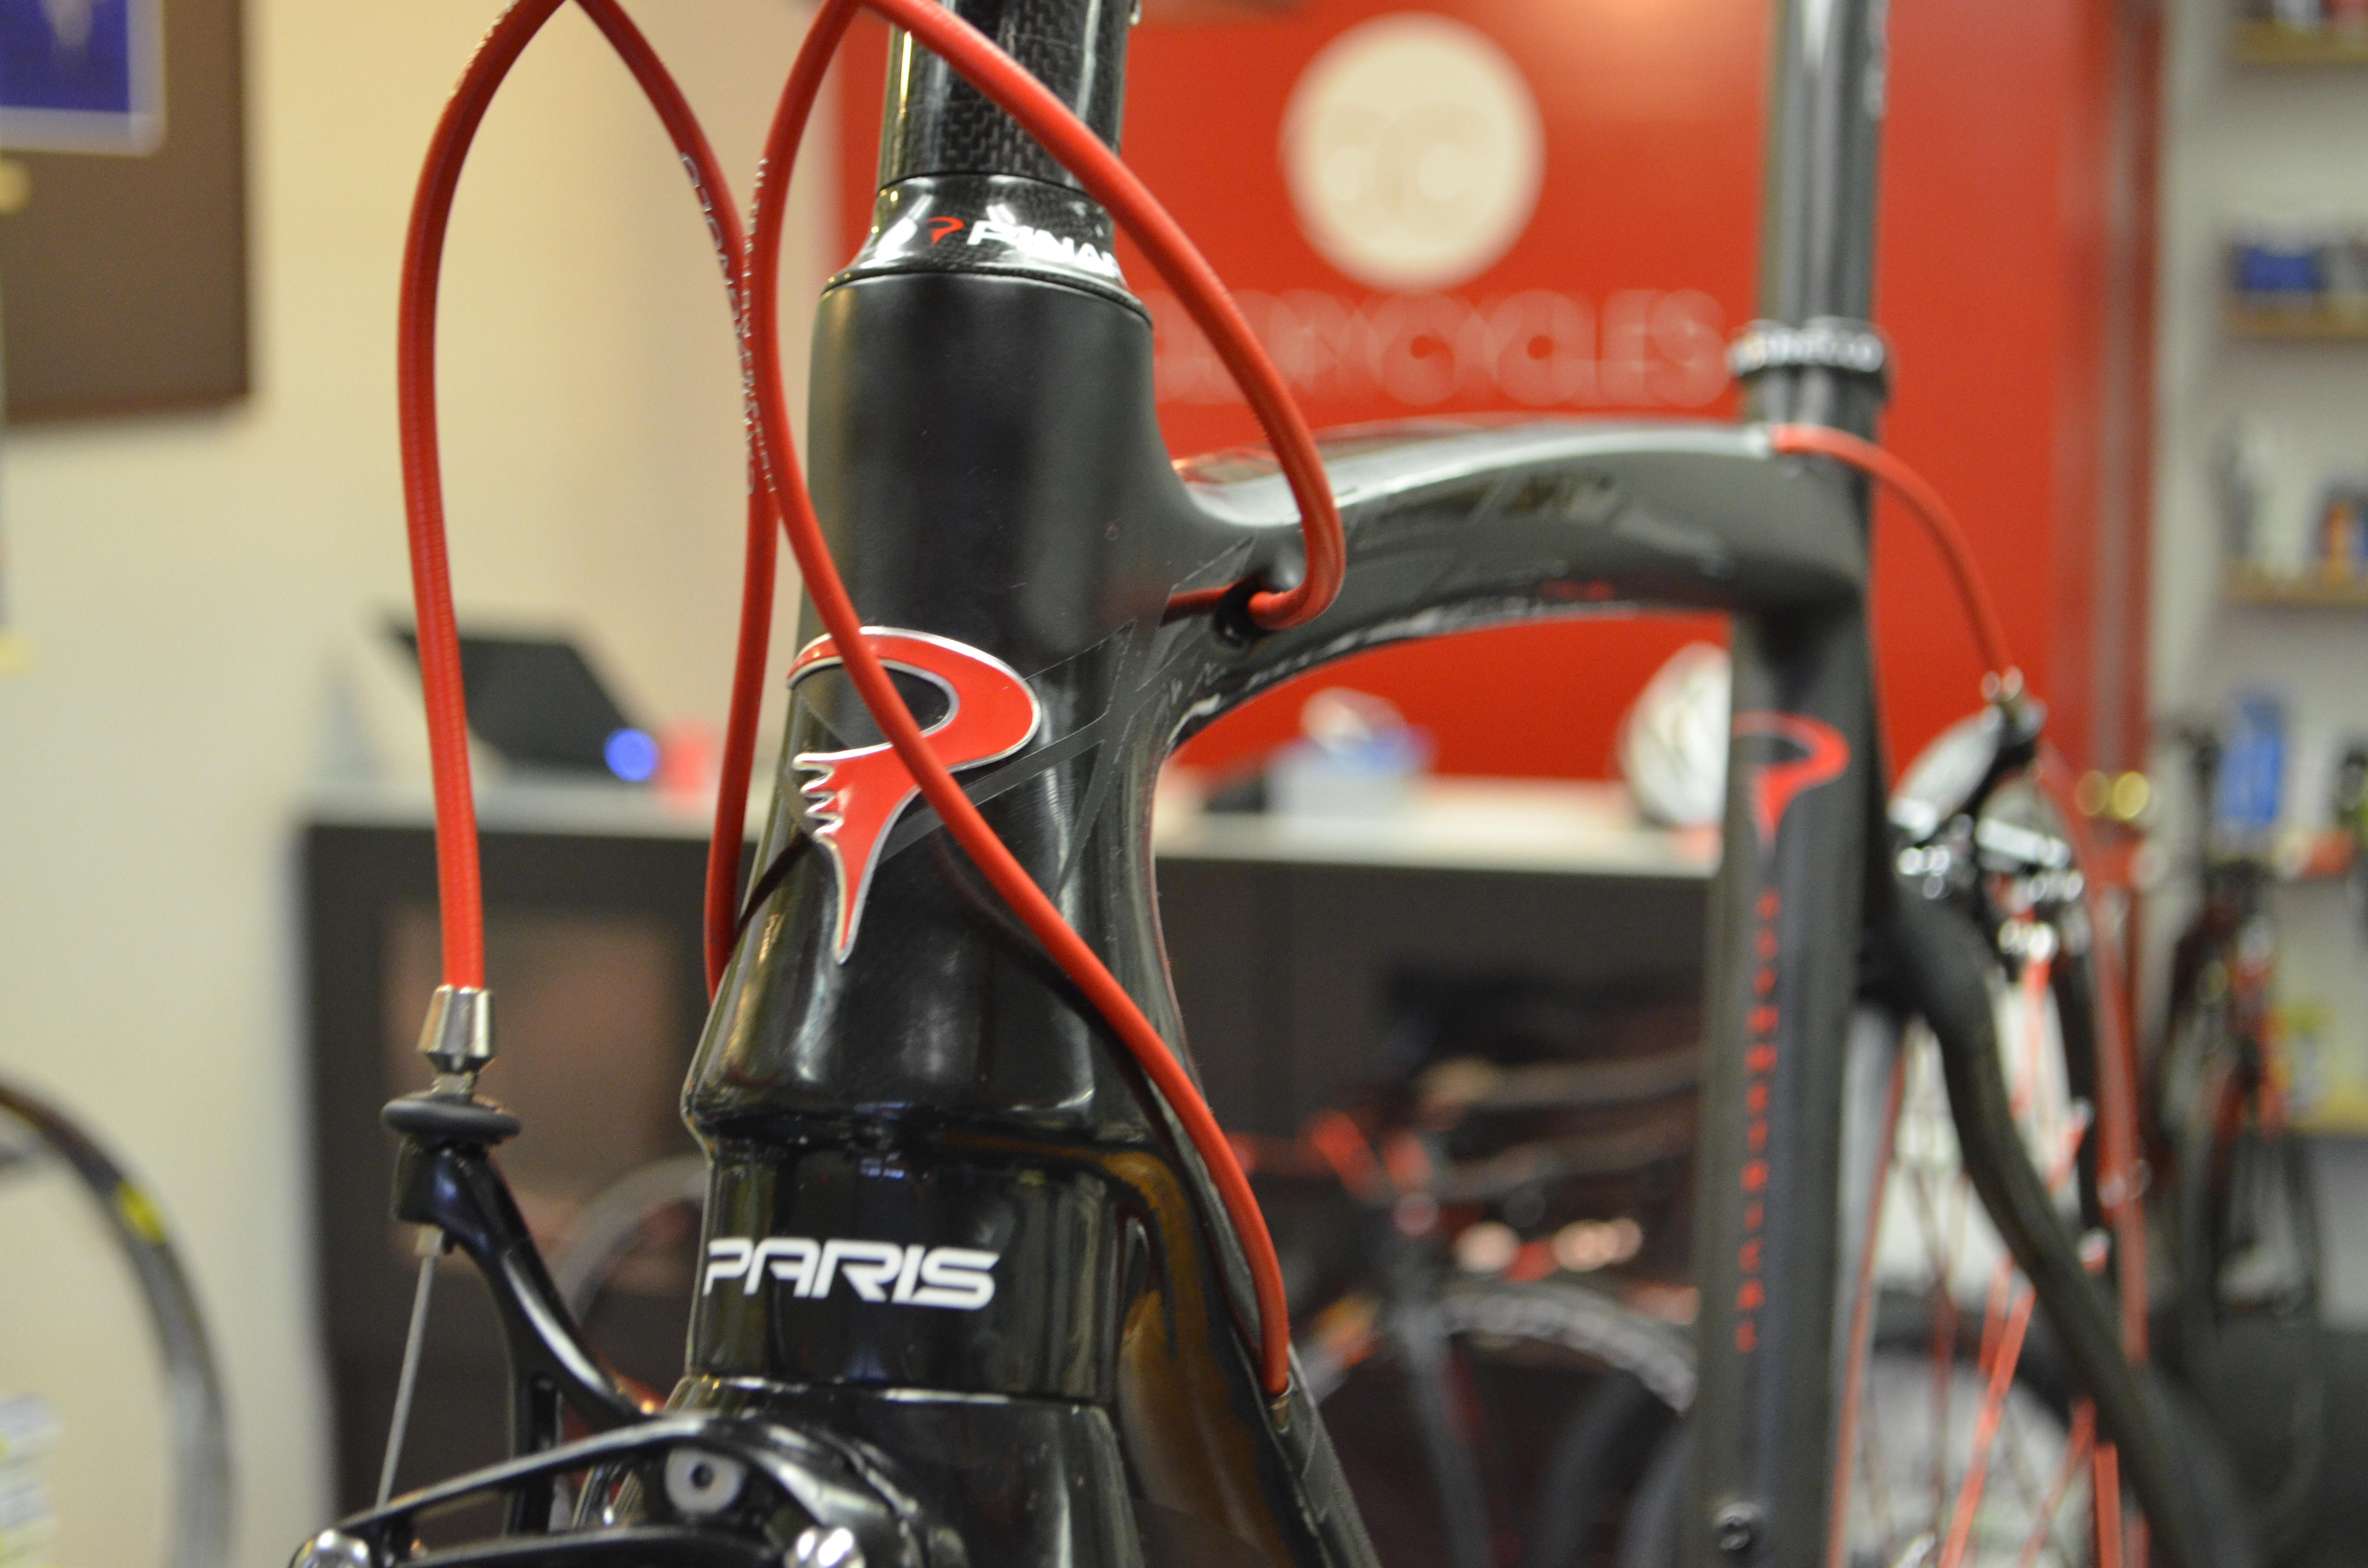 There are many parts of a bike that may cause noises